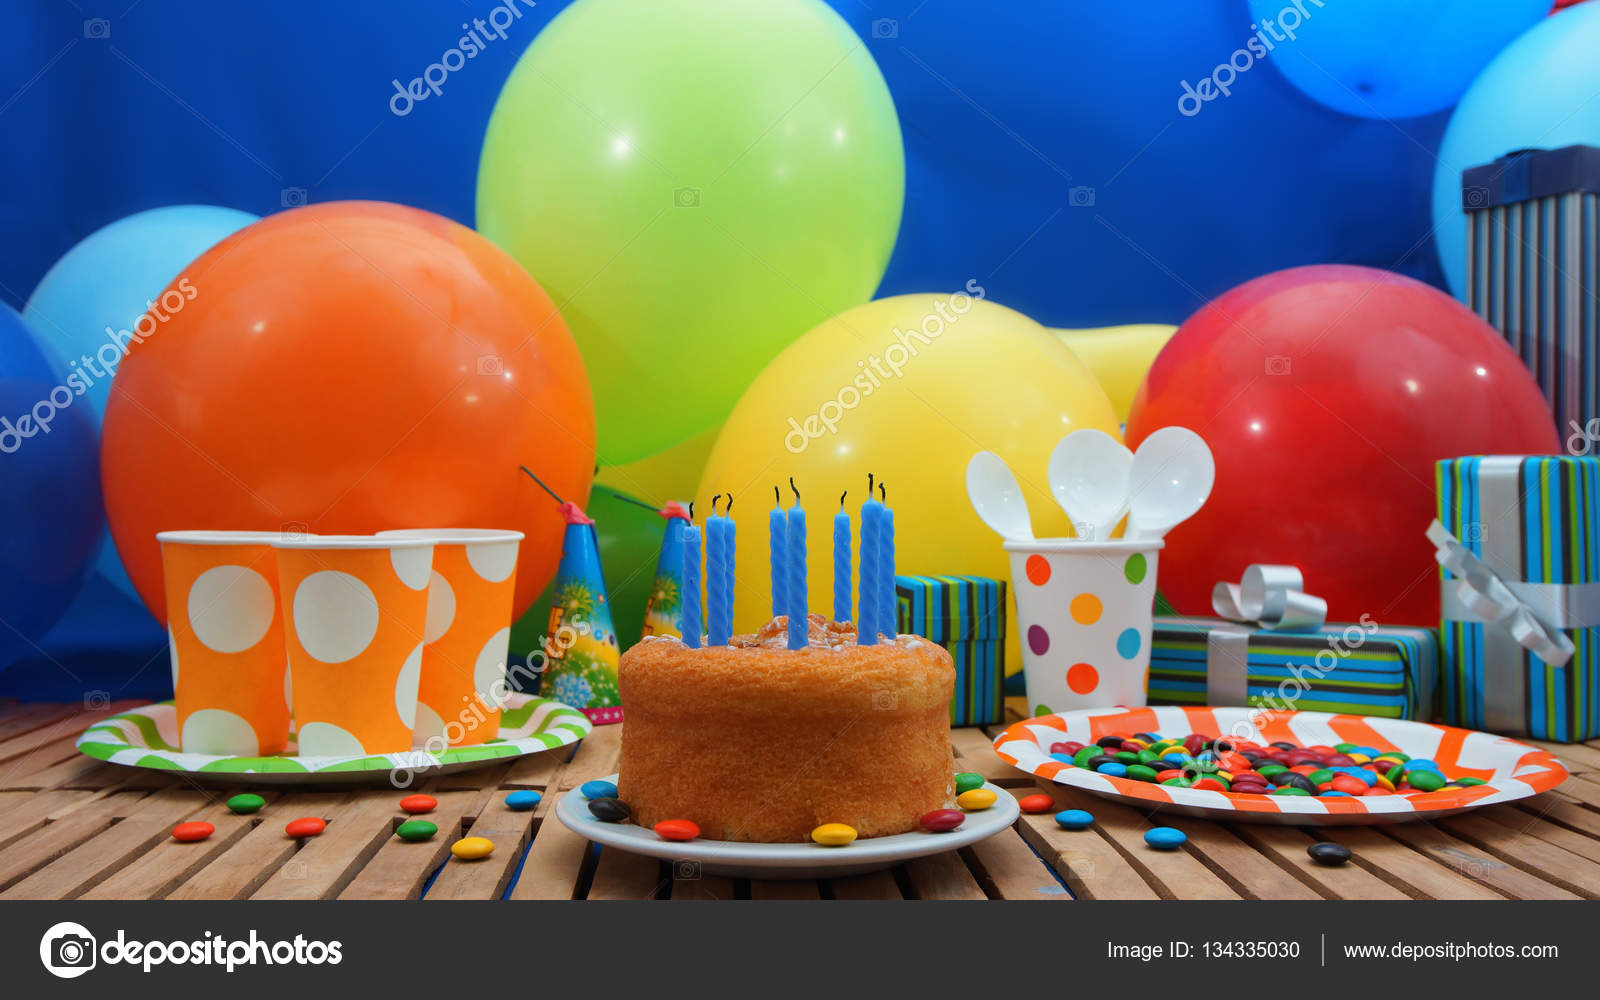 Birthday Cake Balloons Images ~ Birthday cakes images costco birthday cakes order inline how much